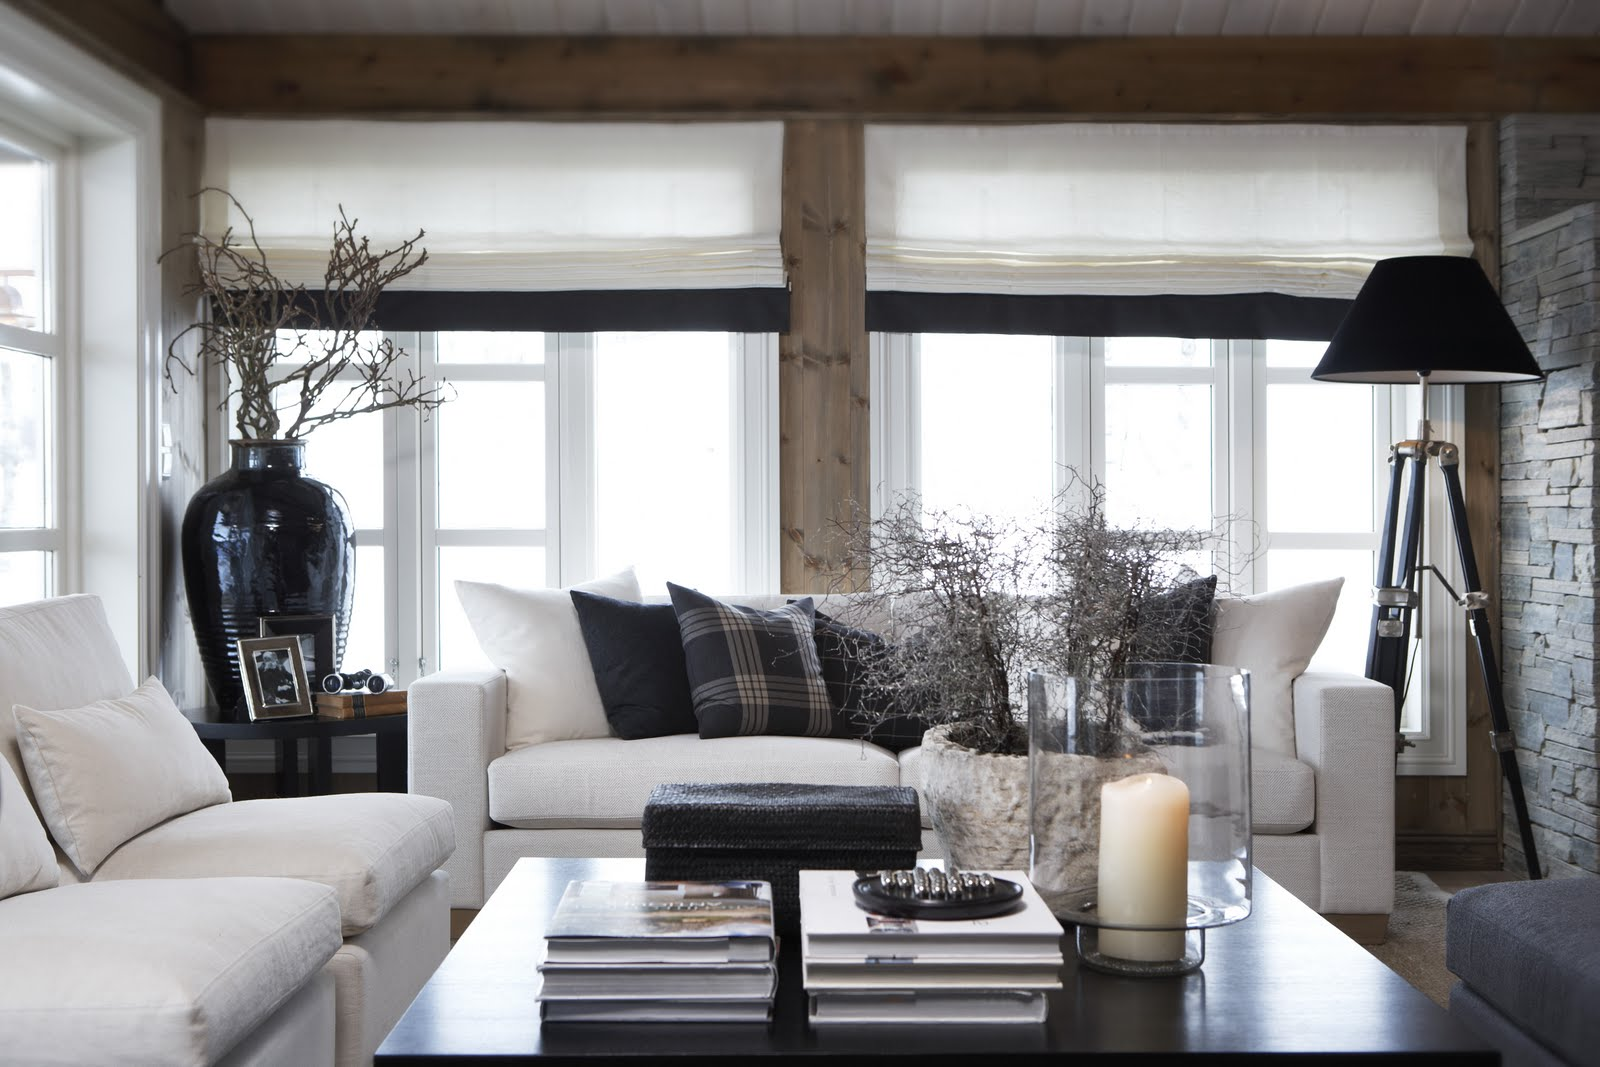 Rustic Cabin Look for Fall